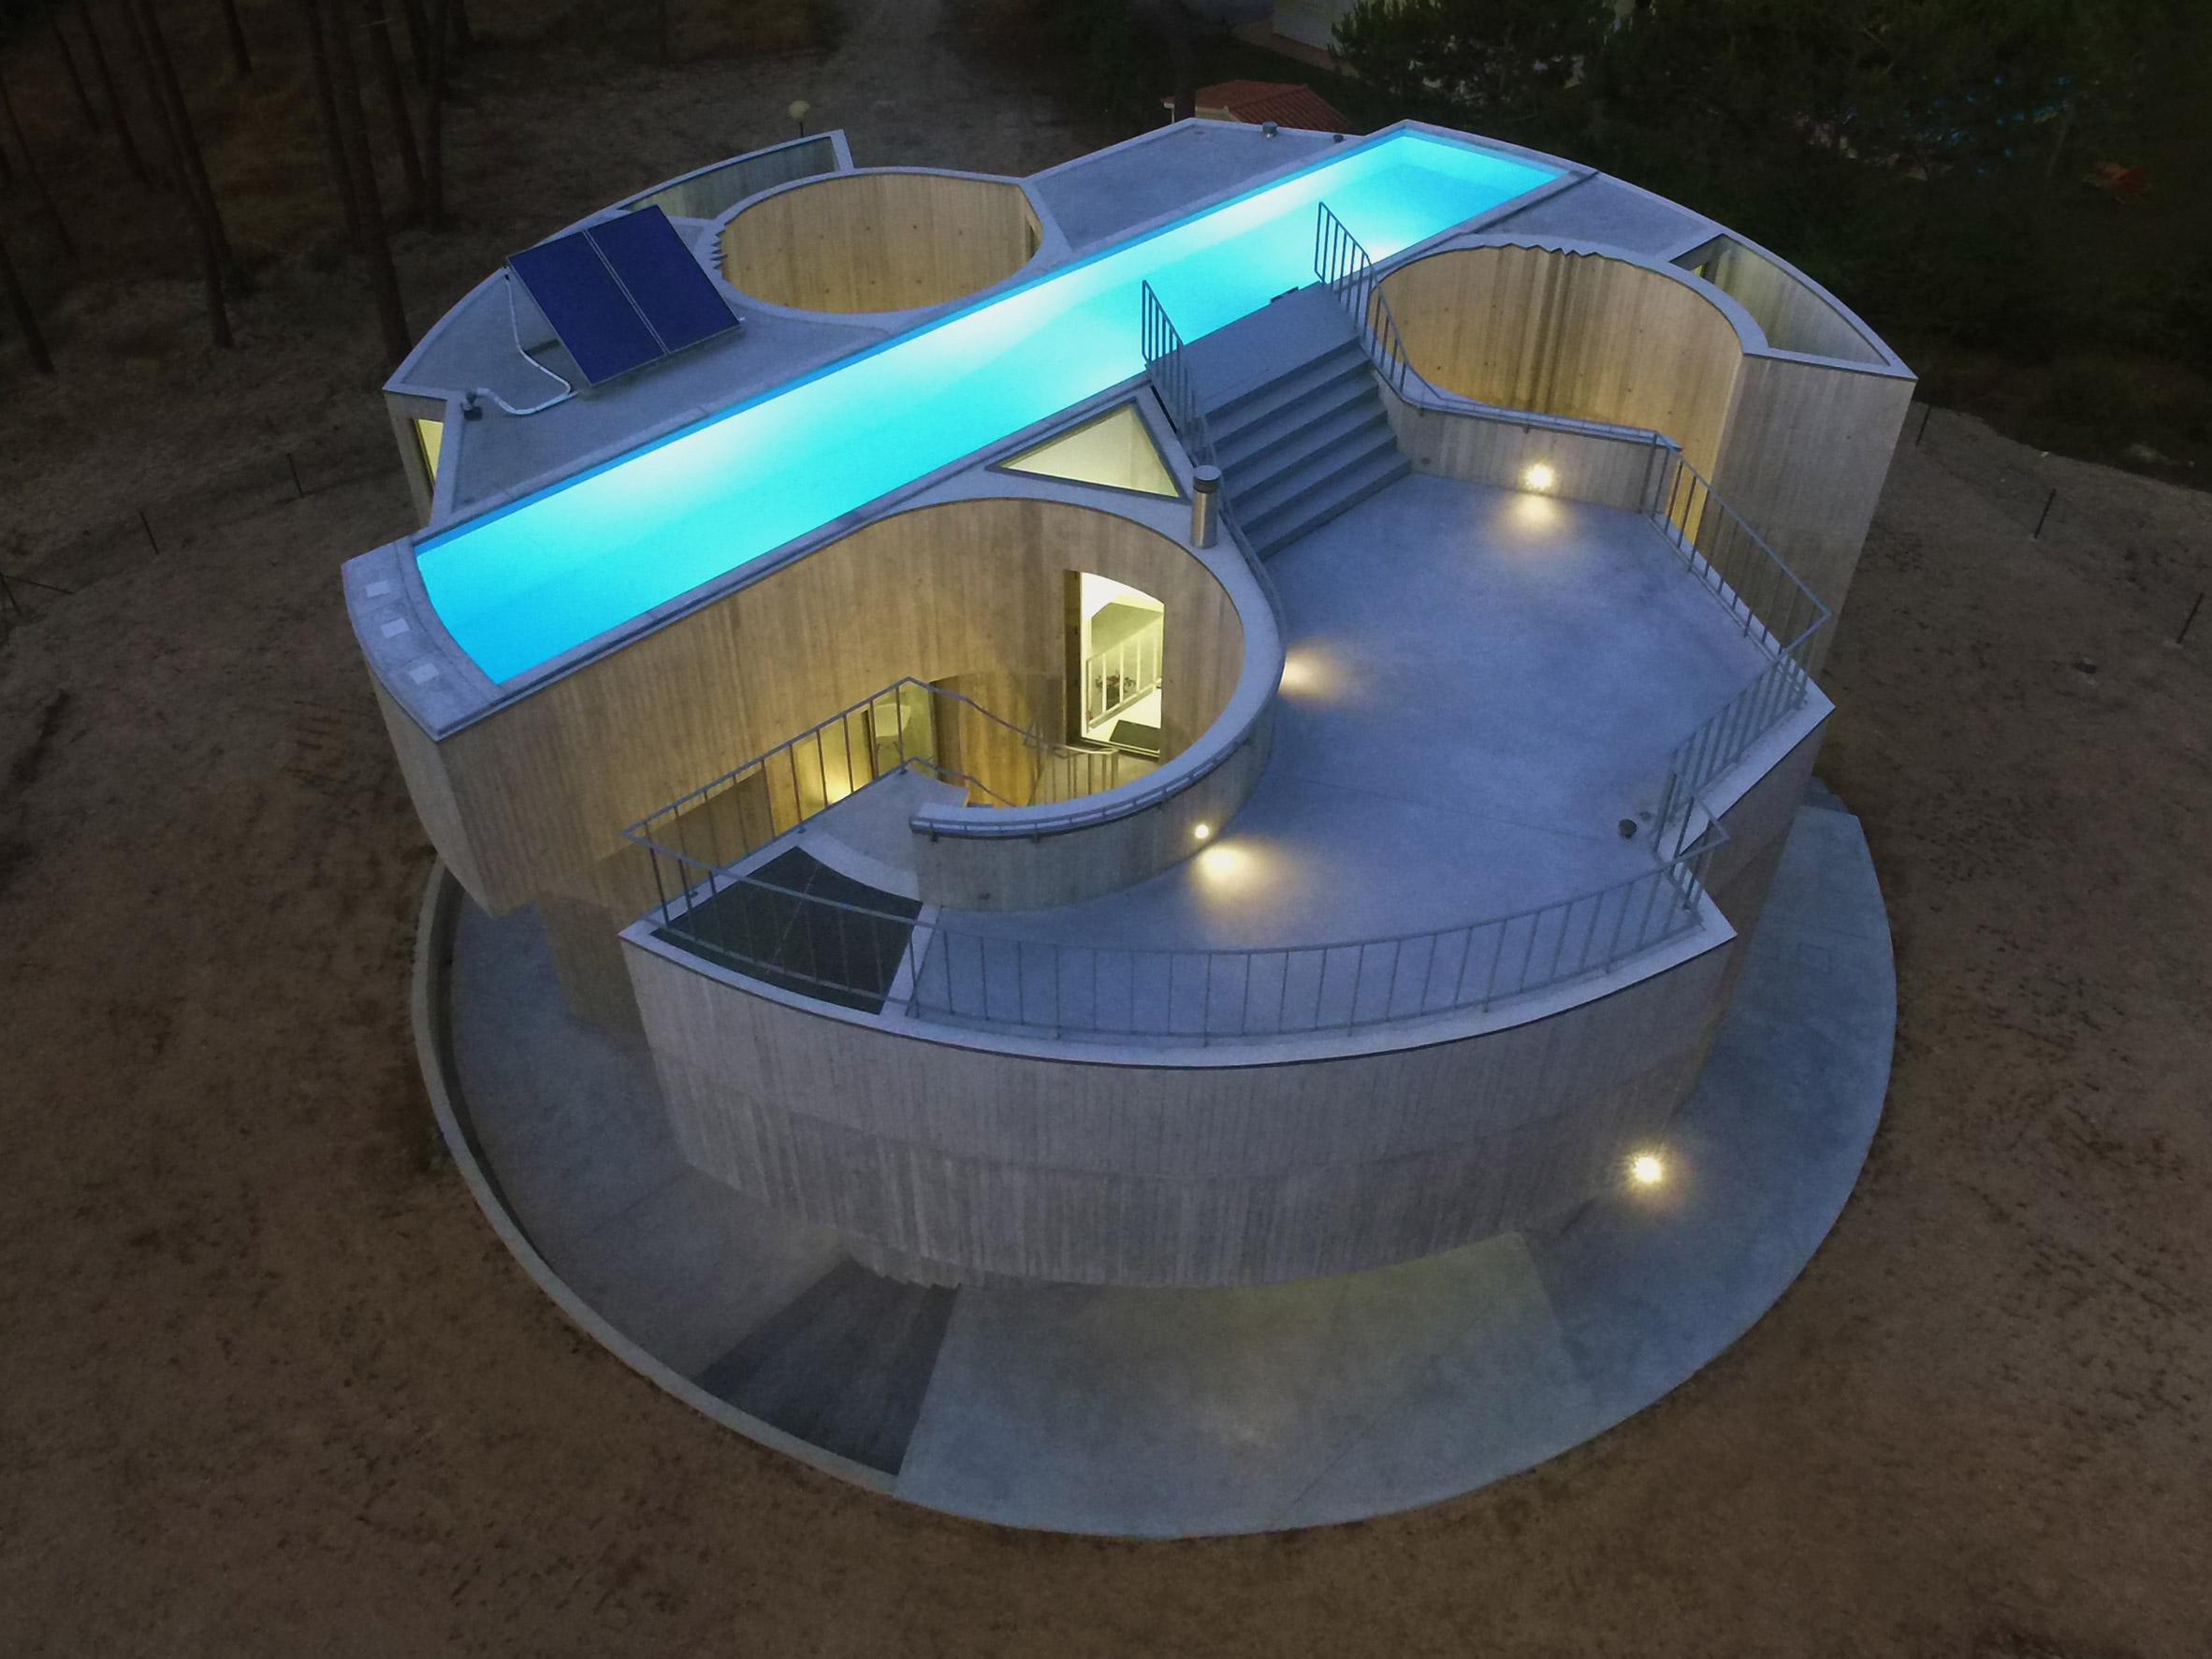 Drone view of pool for Trefoil House in Portugal by Double O Studio